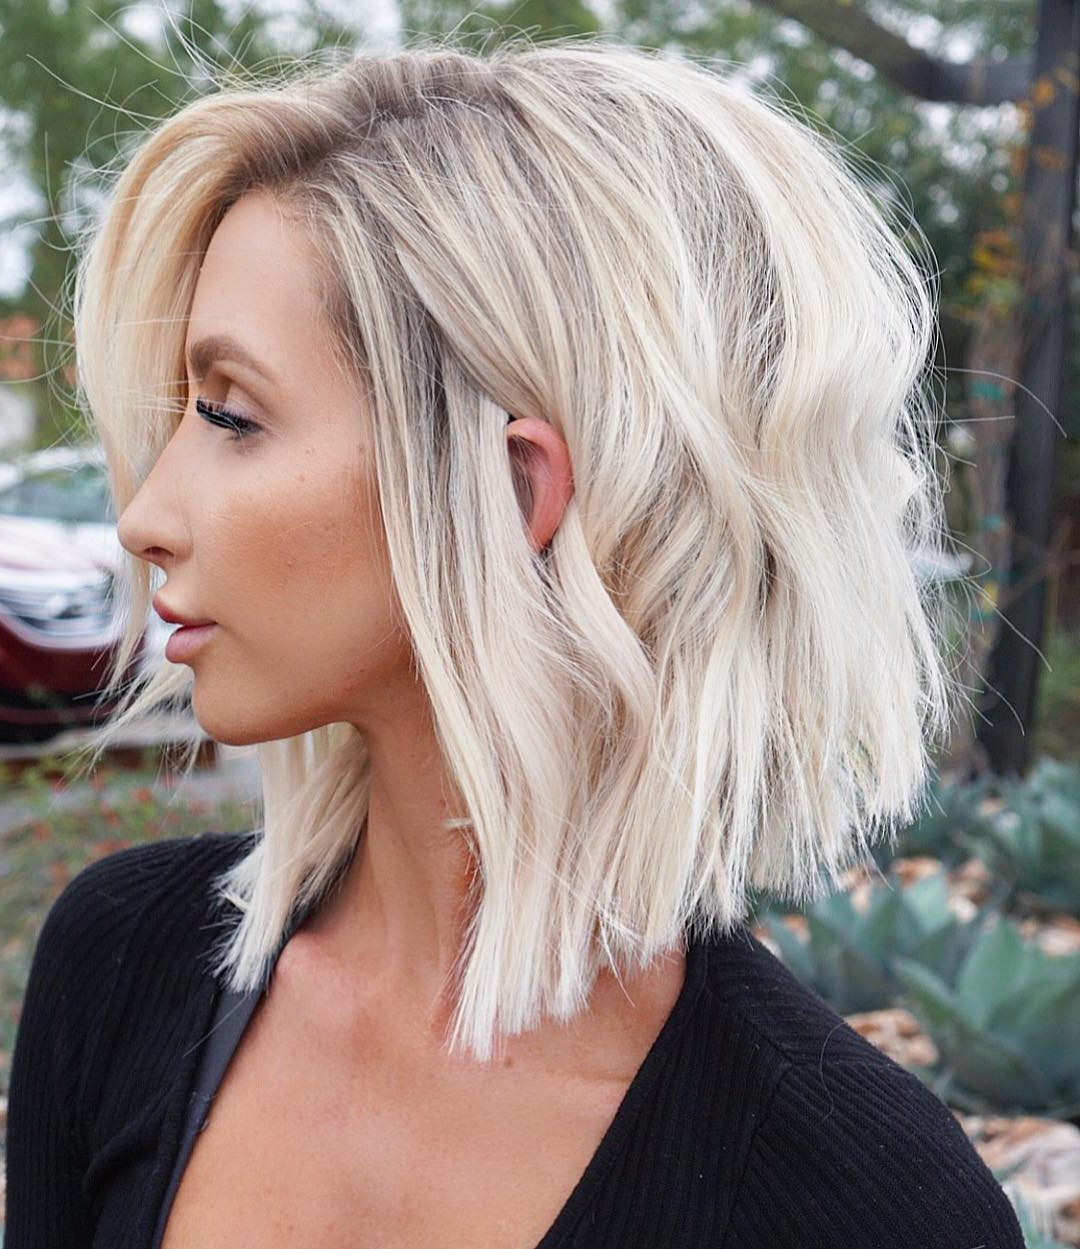 Find Your Best Bob Haircut For 2019 Intended For Most Current Round Bob Hairstyles With Front Bang (View 12 of 20)